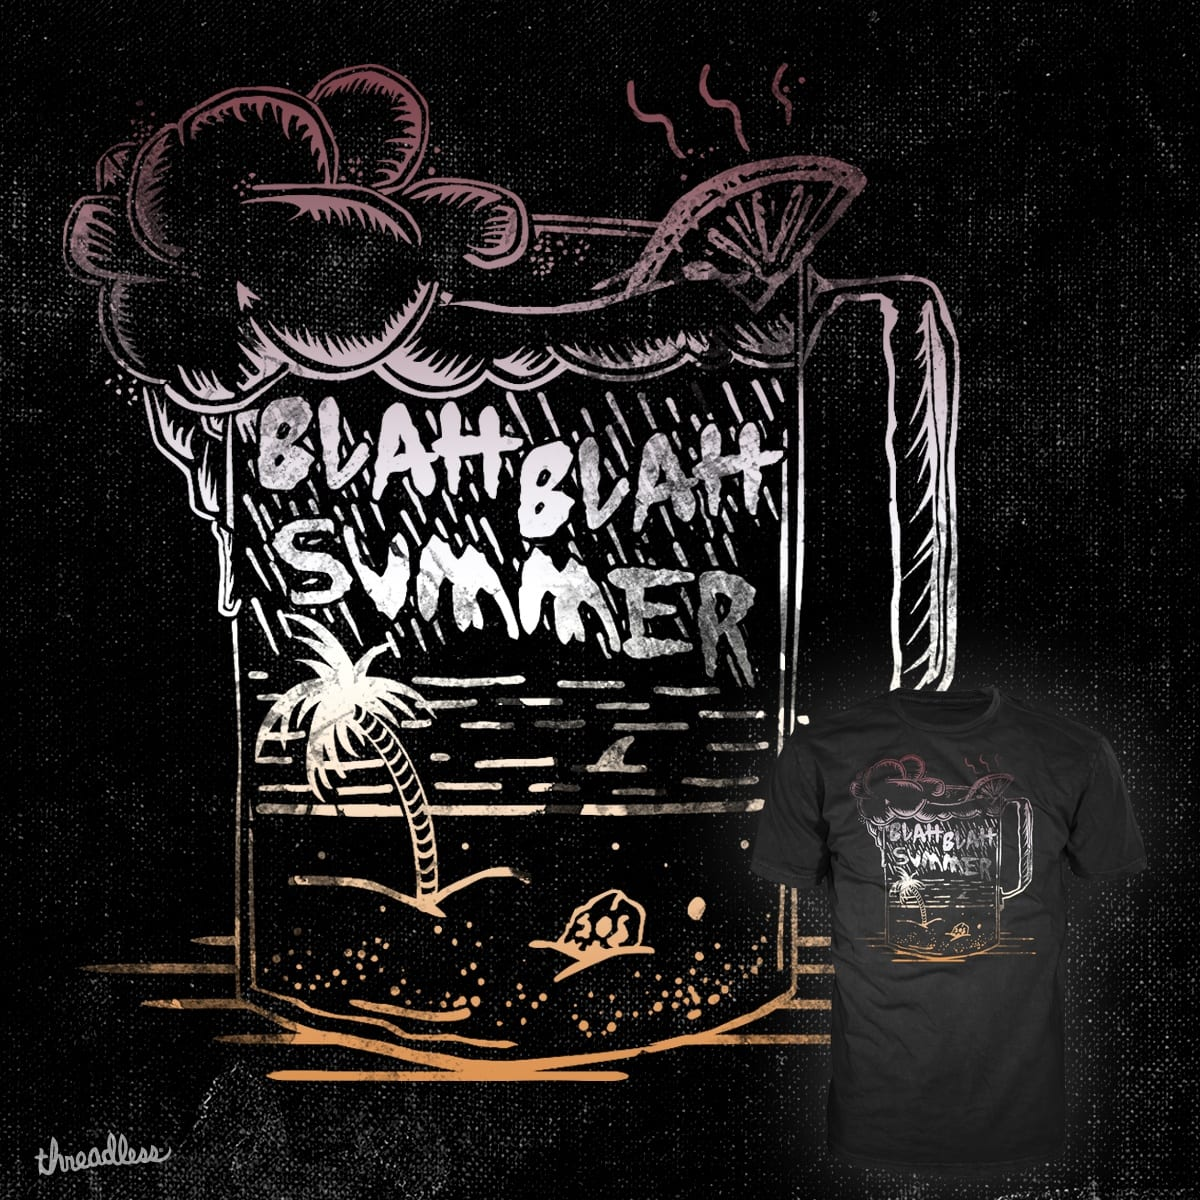 BLAH BLAH SUMMER by jhighfill on Threadless